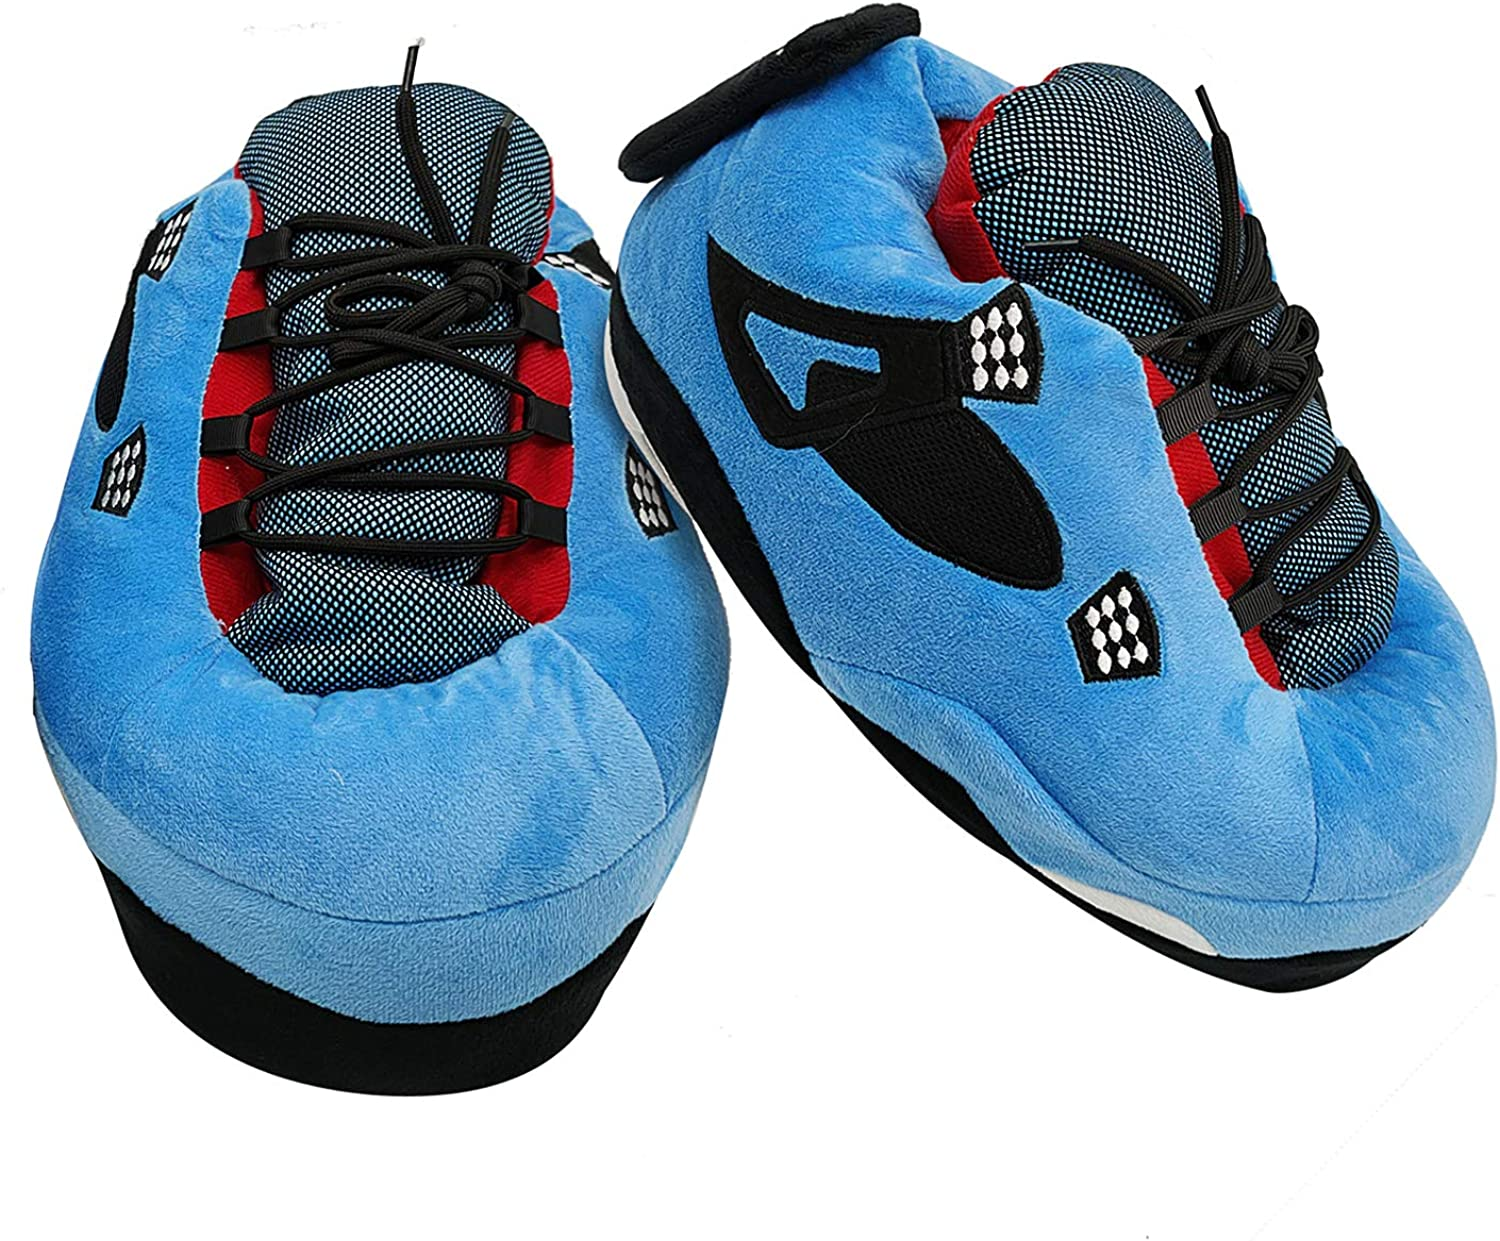 SoleSlip Sneaker Slippers Comfy and Trendy Pu Raleigh Mall Men for Sneakers San Jose Mall